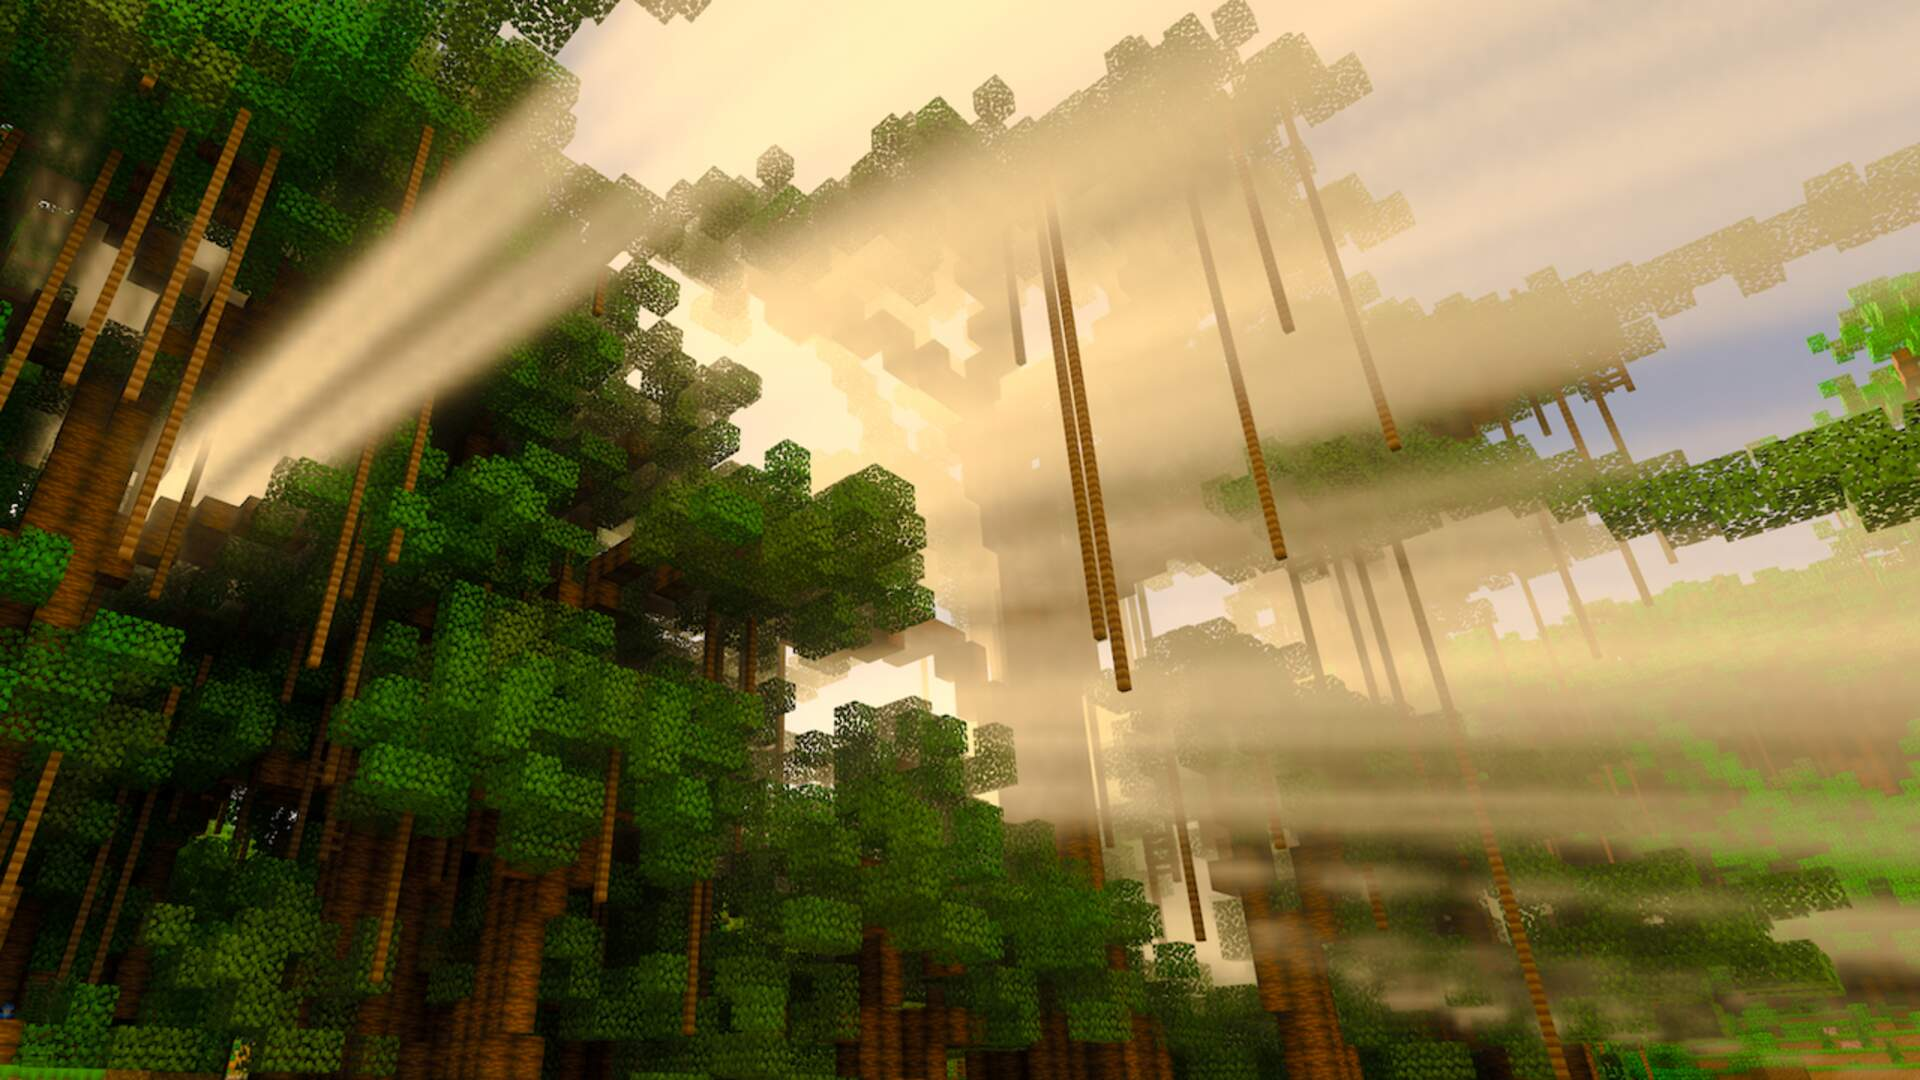 Minecraft's Ray Tracing Update Is Now Available For All Windows 10 Players